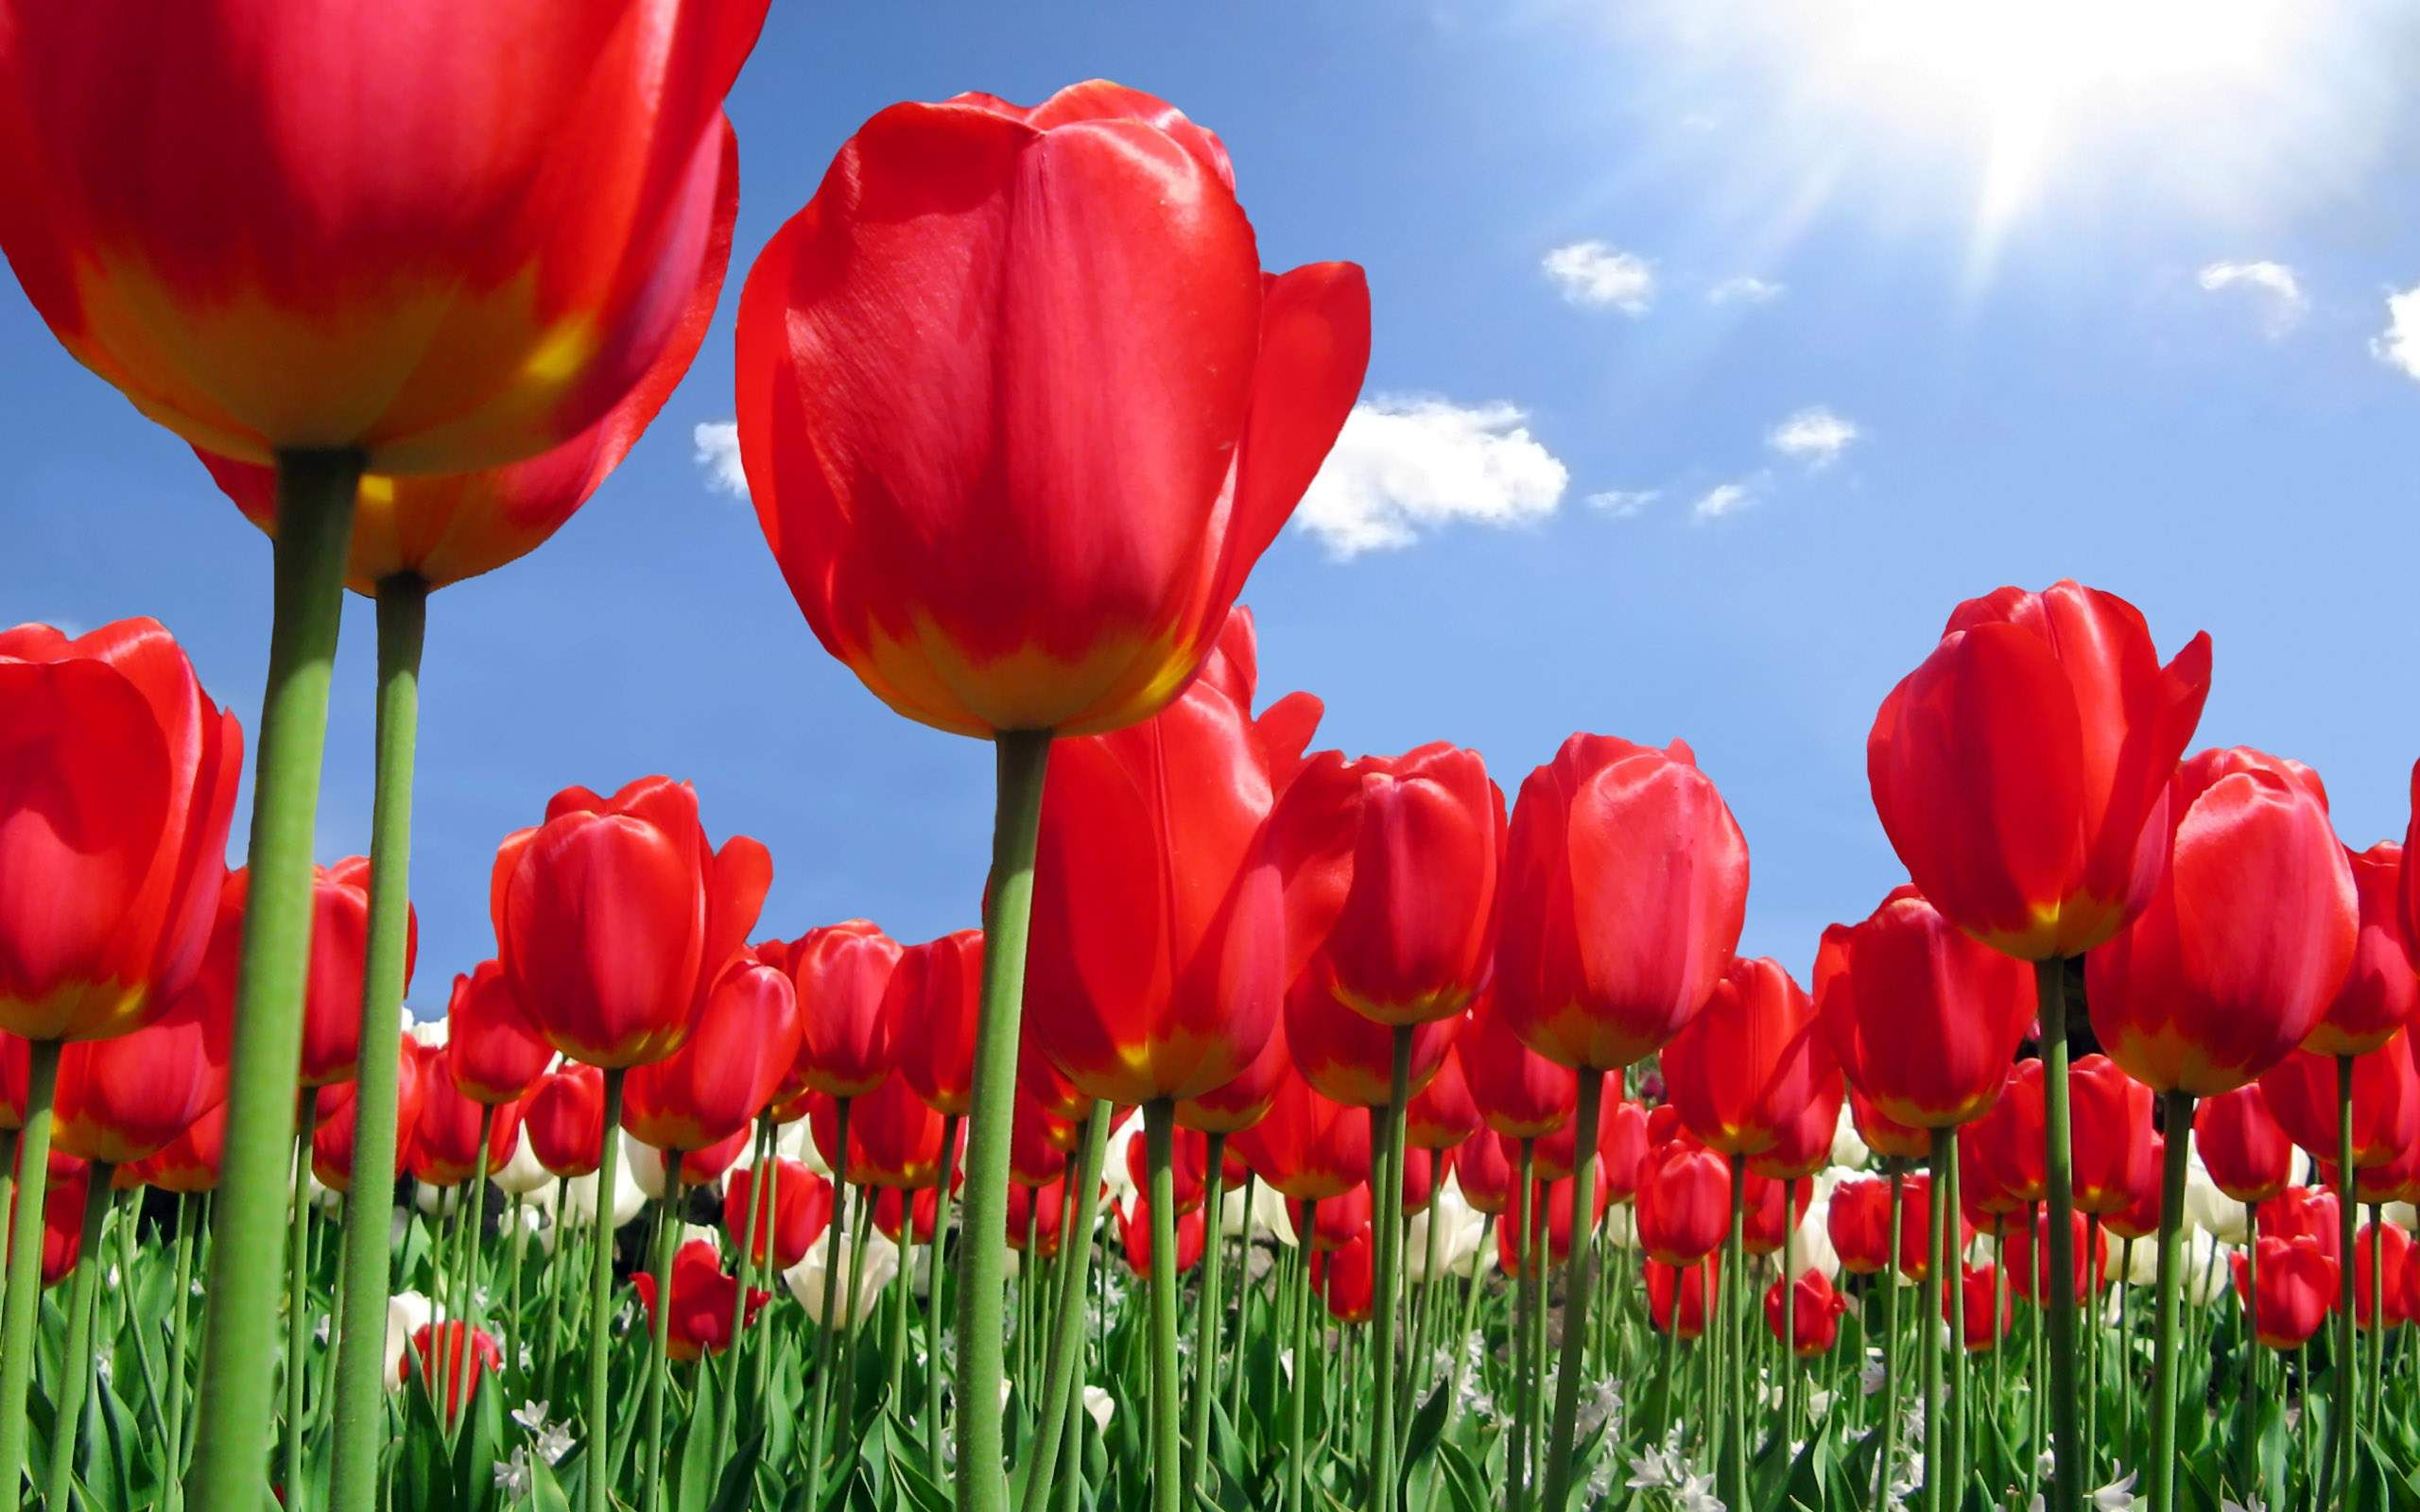 Red Red Tulip Flowers Fields Wallpapers All Flowers Send Flowers Flower Wallpaper Red Tulips Tulips Flowers